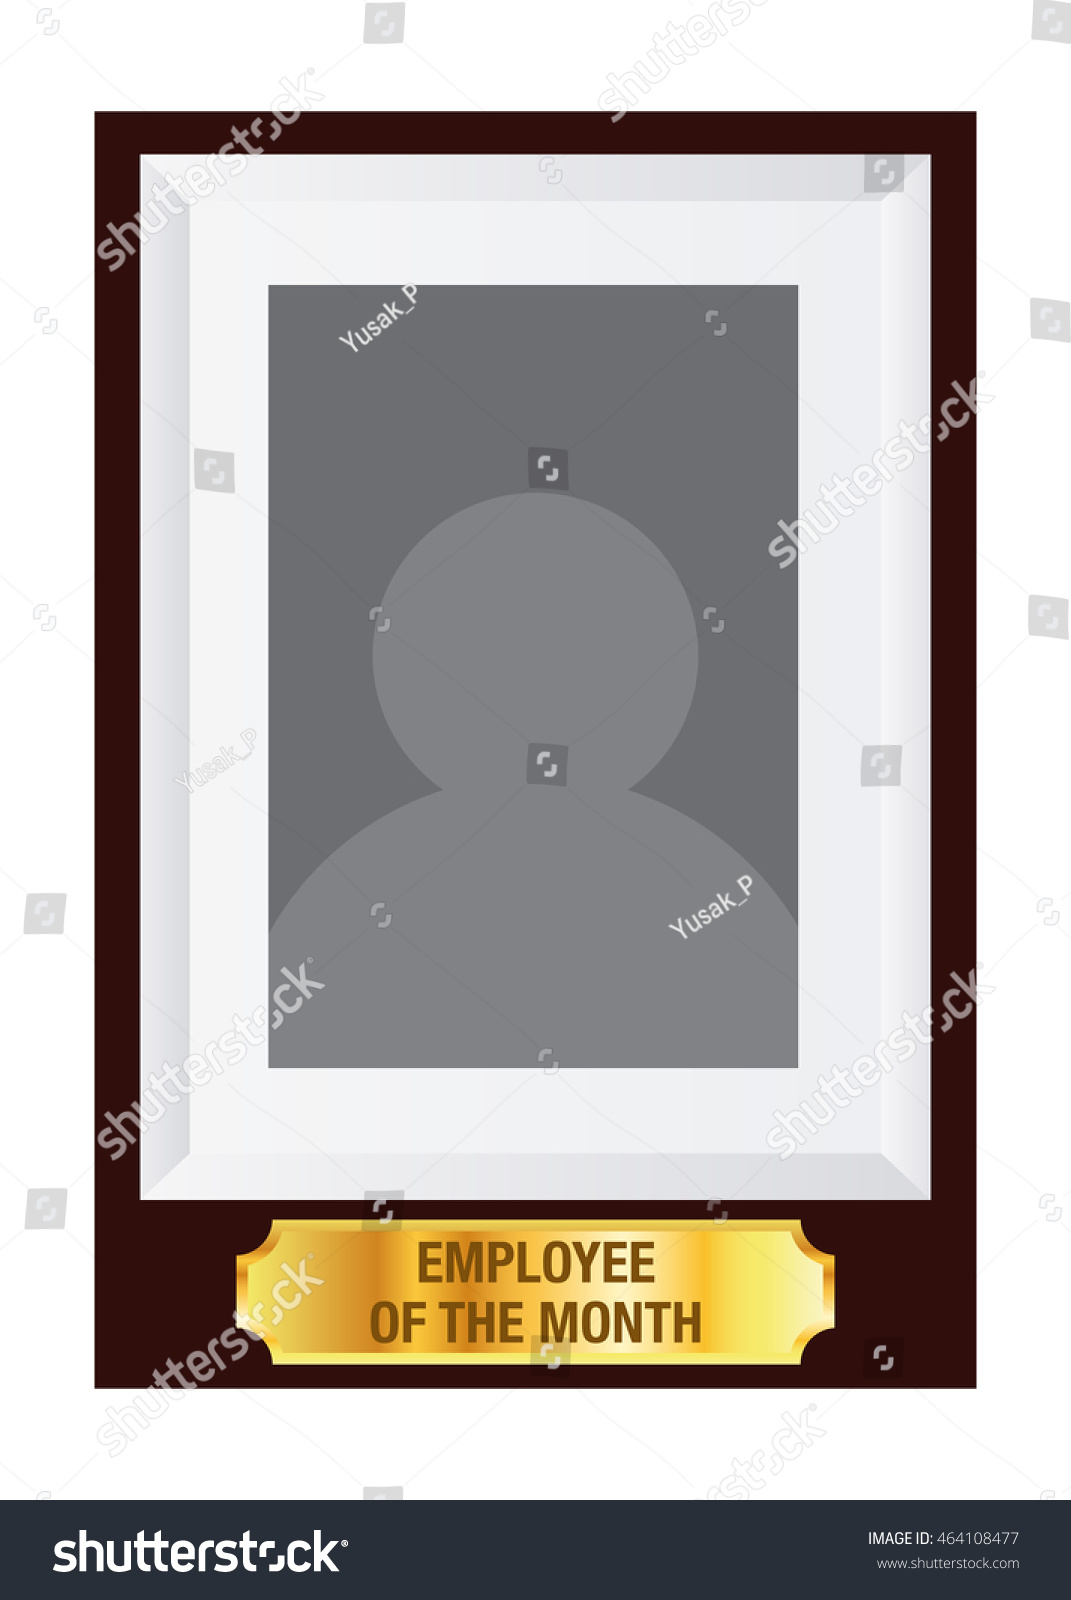 vector stock employee month award photo stock vector royalty free